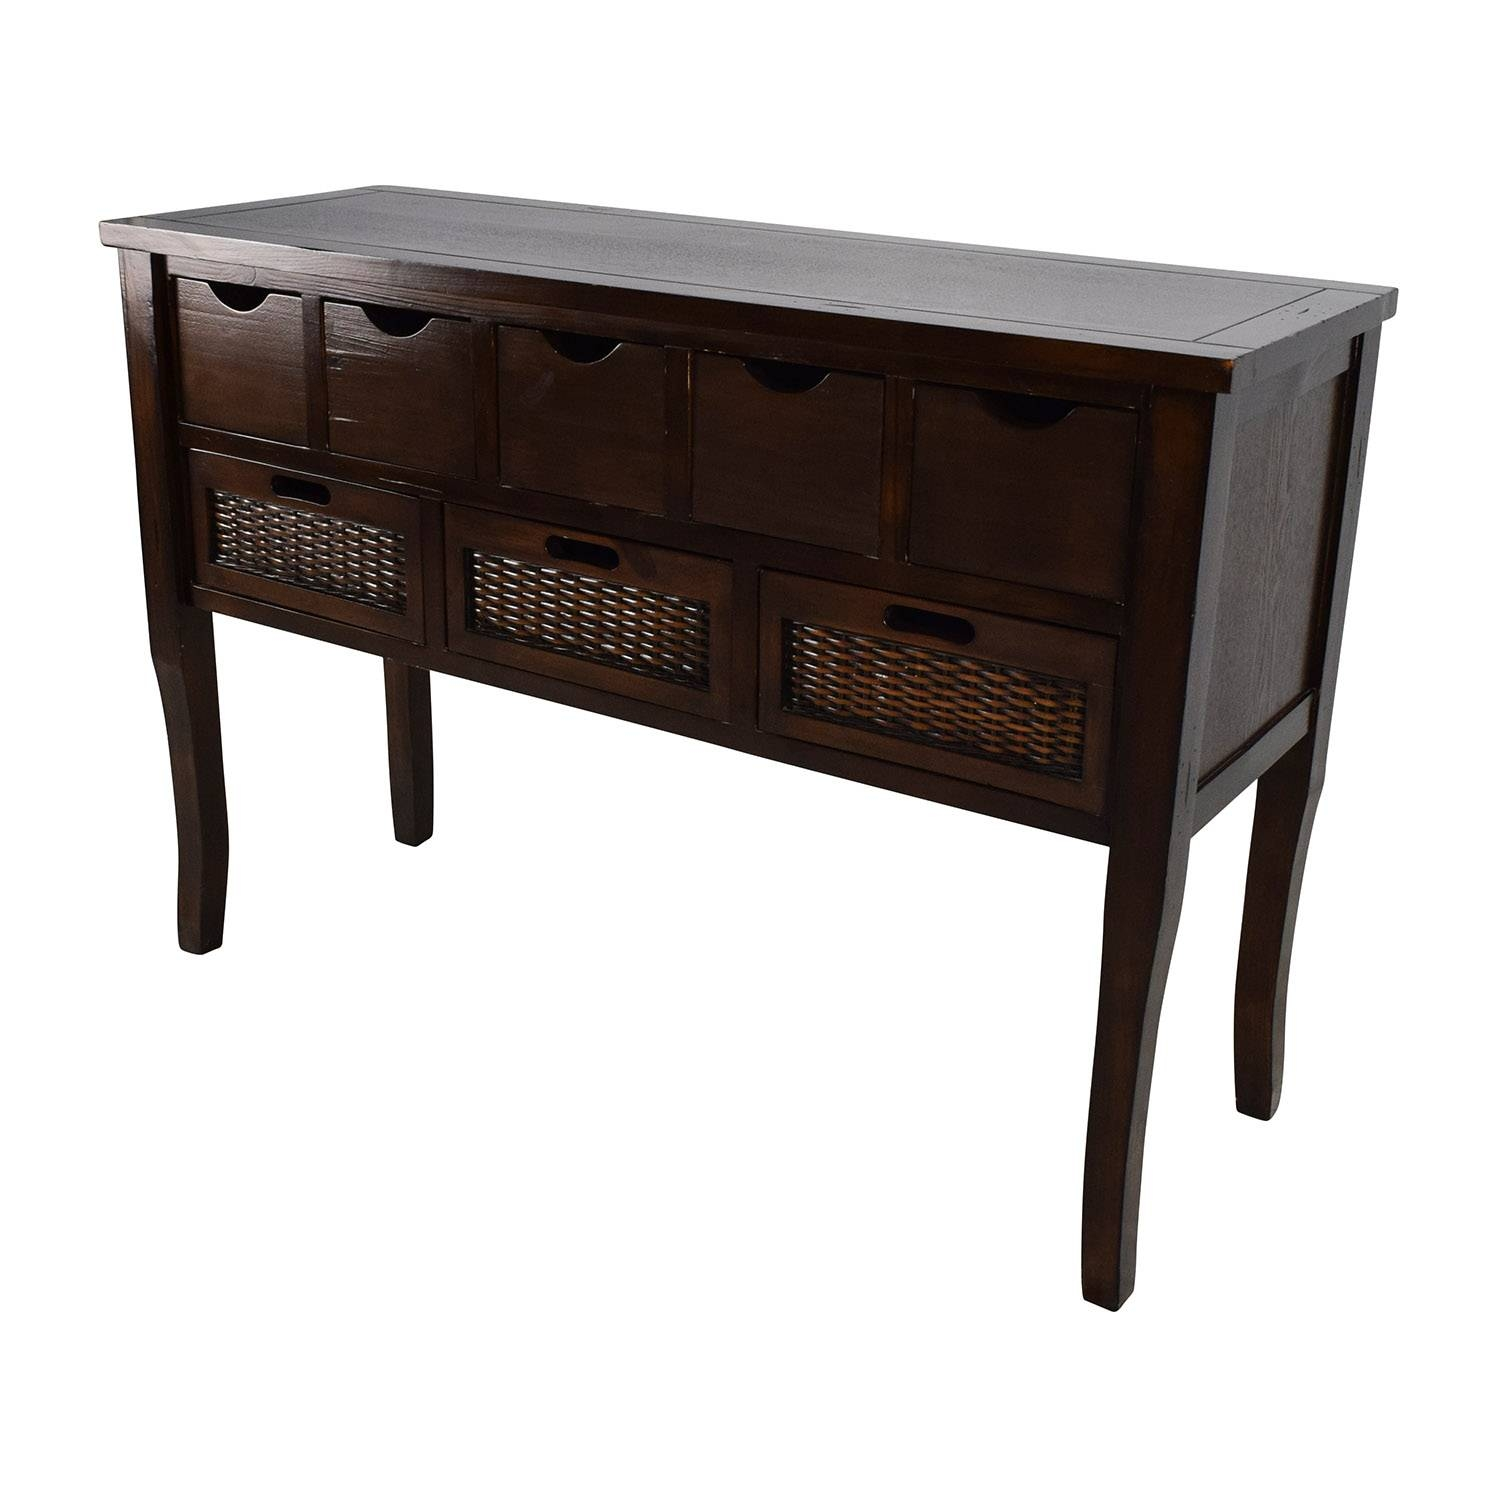 Inspiration about 65% Off – Unknown Brown Wood Multi Drawer Sideboard / Storage With Regard To Multi Drawer Sideboards (#5 of 15)